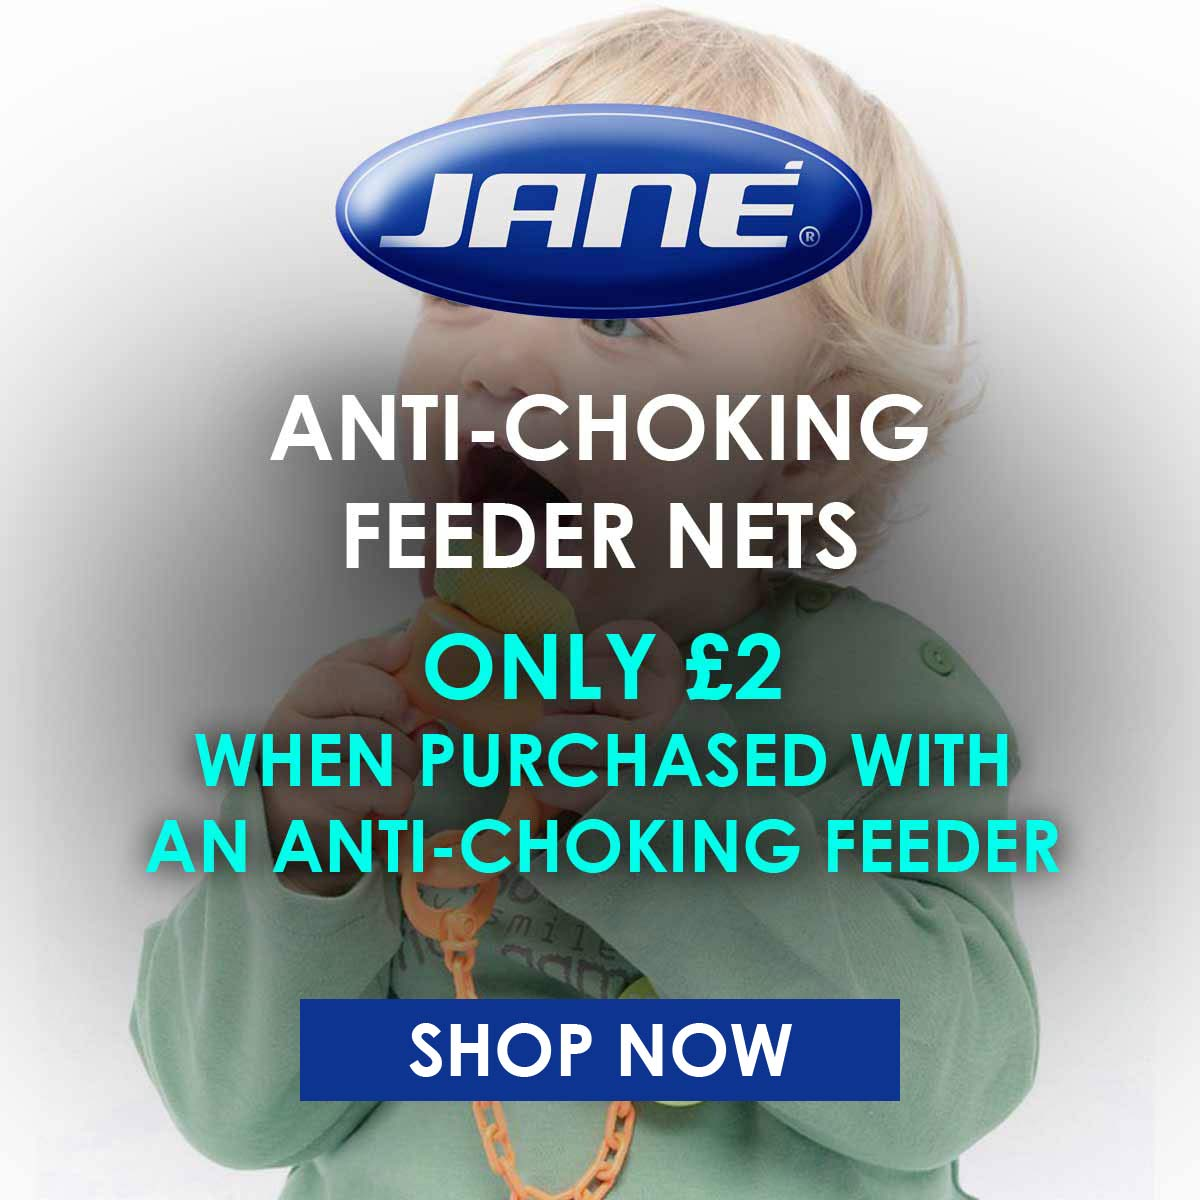 Jane Anti-choking feeder nets